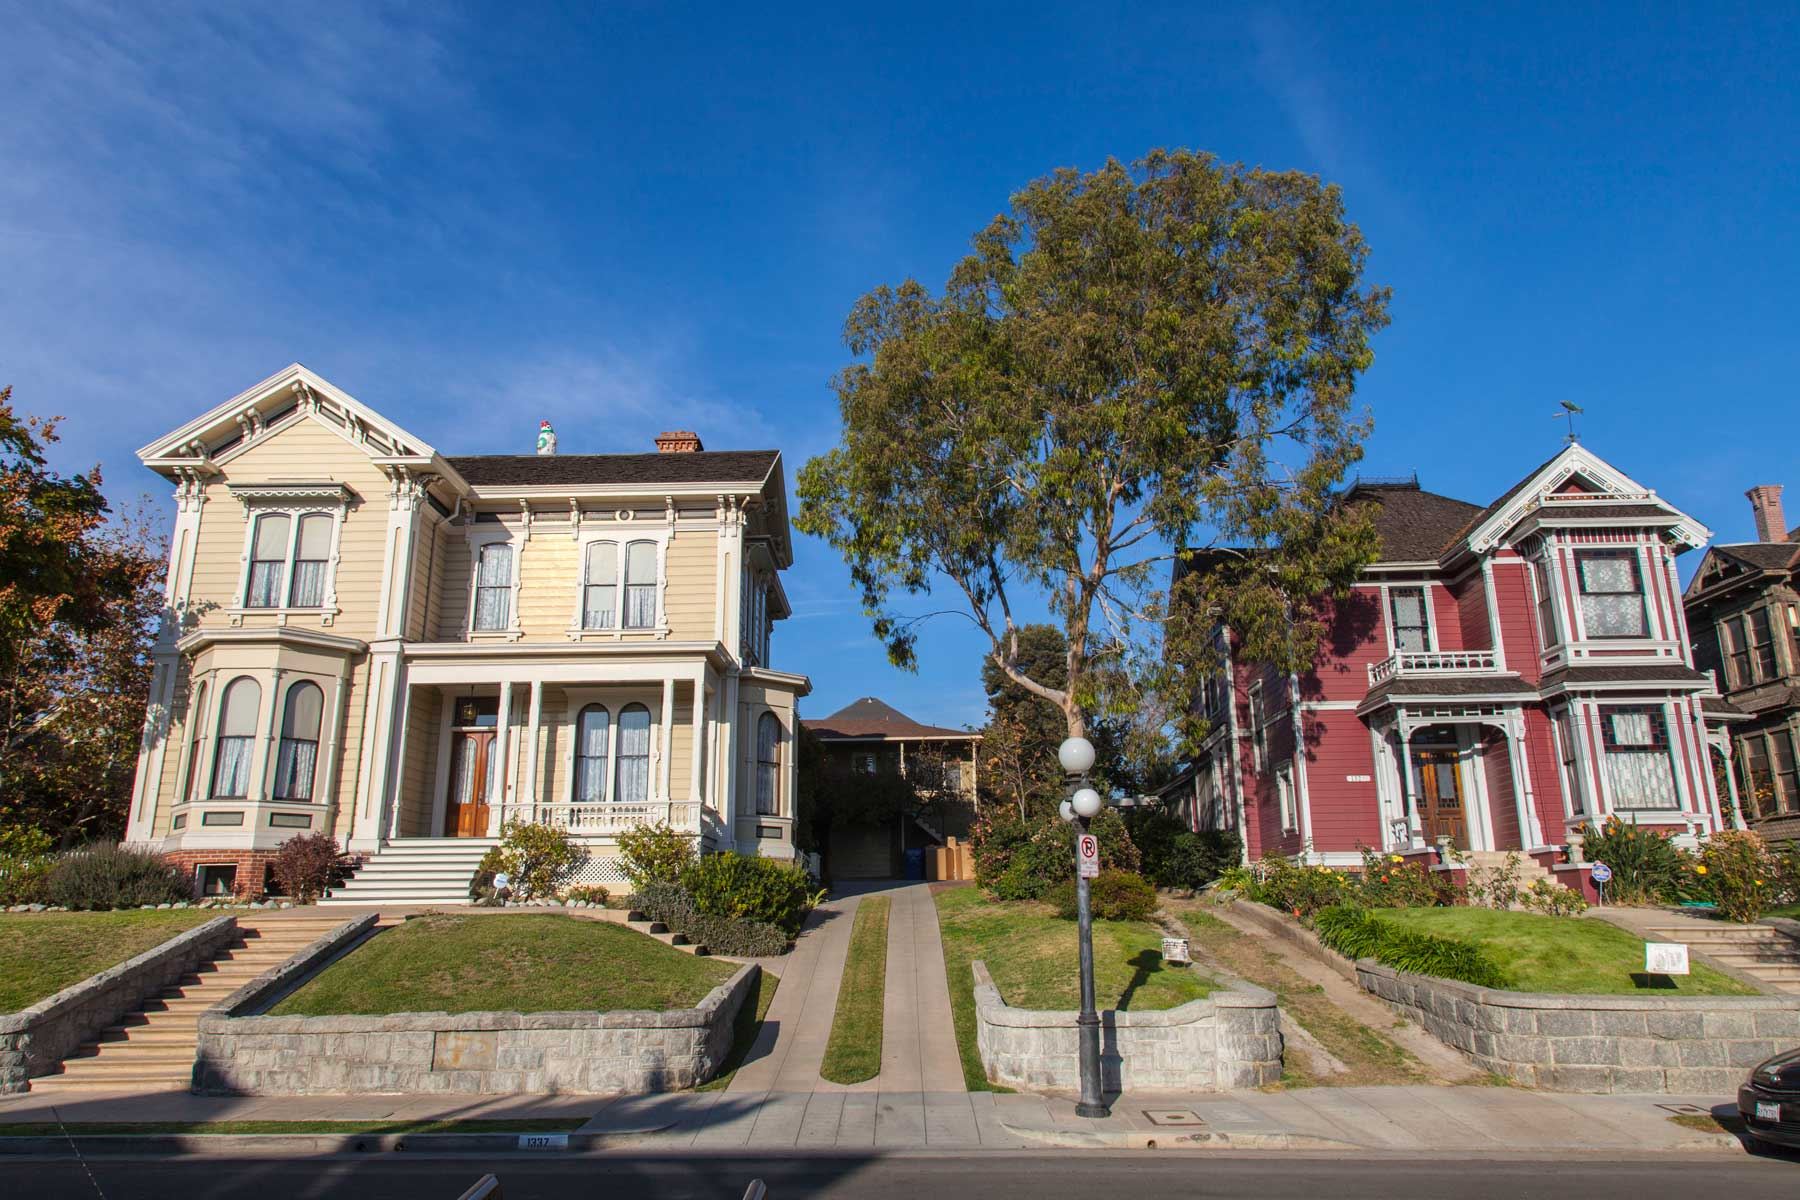 Victorian homes along Carroll Avenue in Angelino Heights in Los Angeles, California